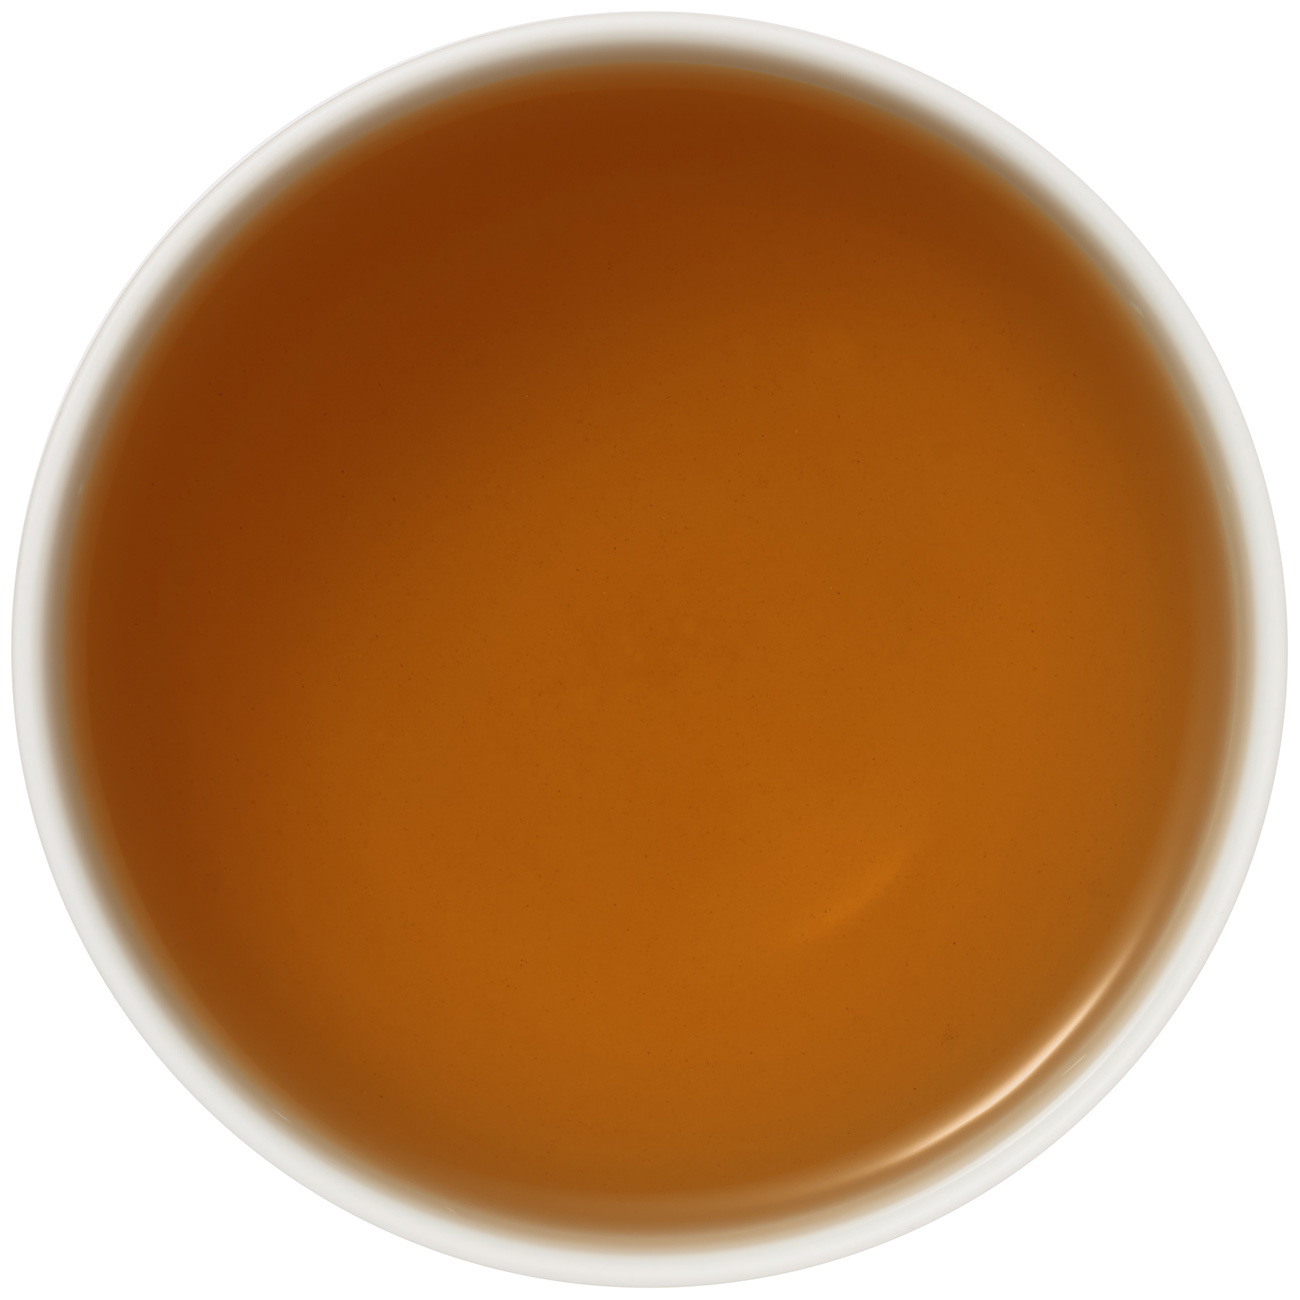 Taiwan Oolong Finest thee